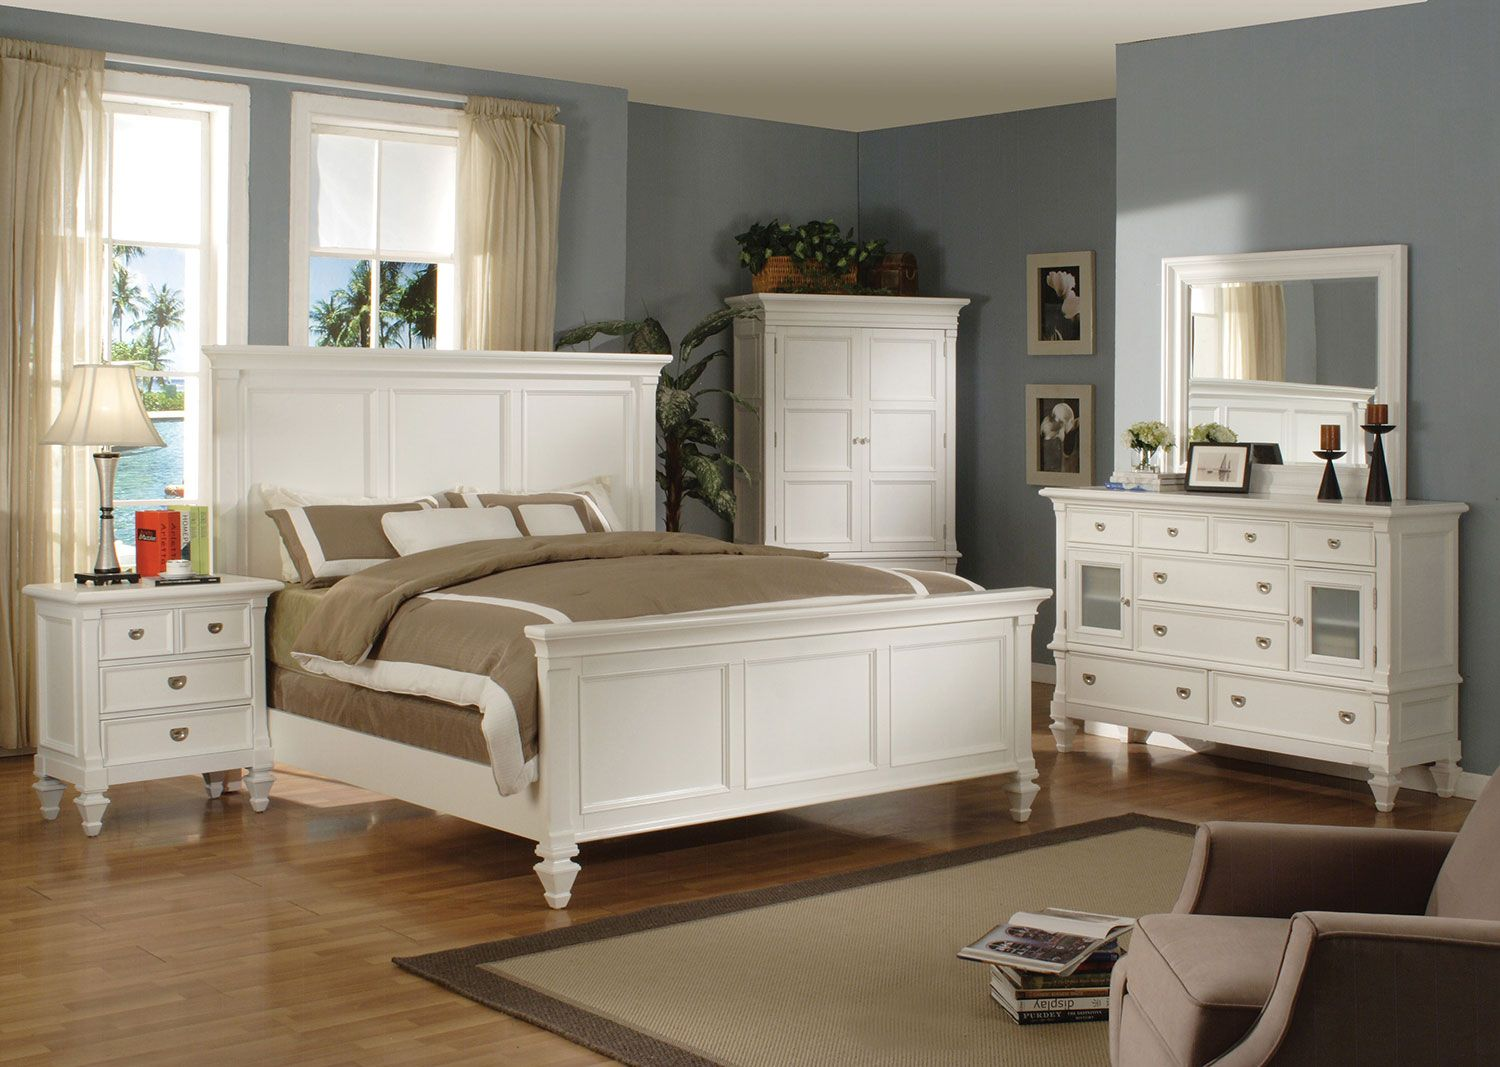 Beautiful White King Bedroom Set Concept